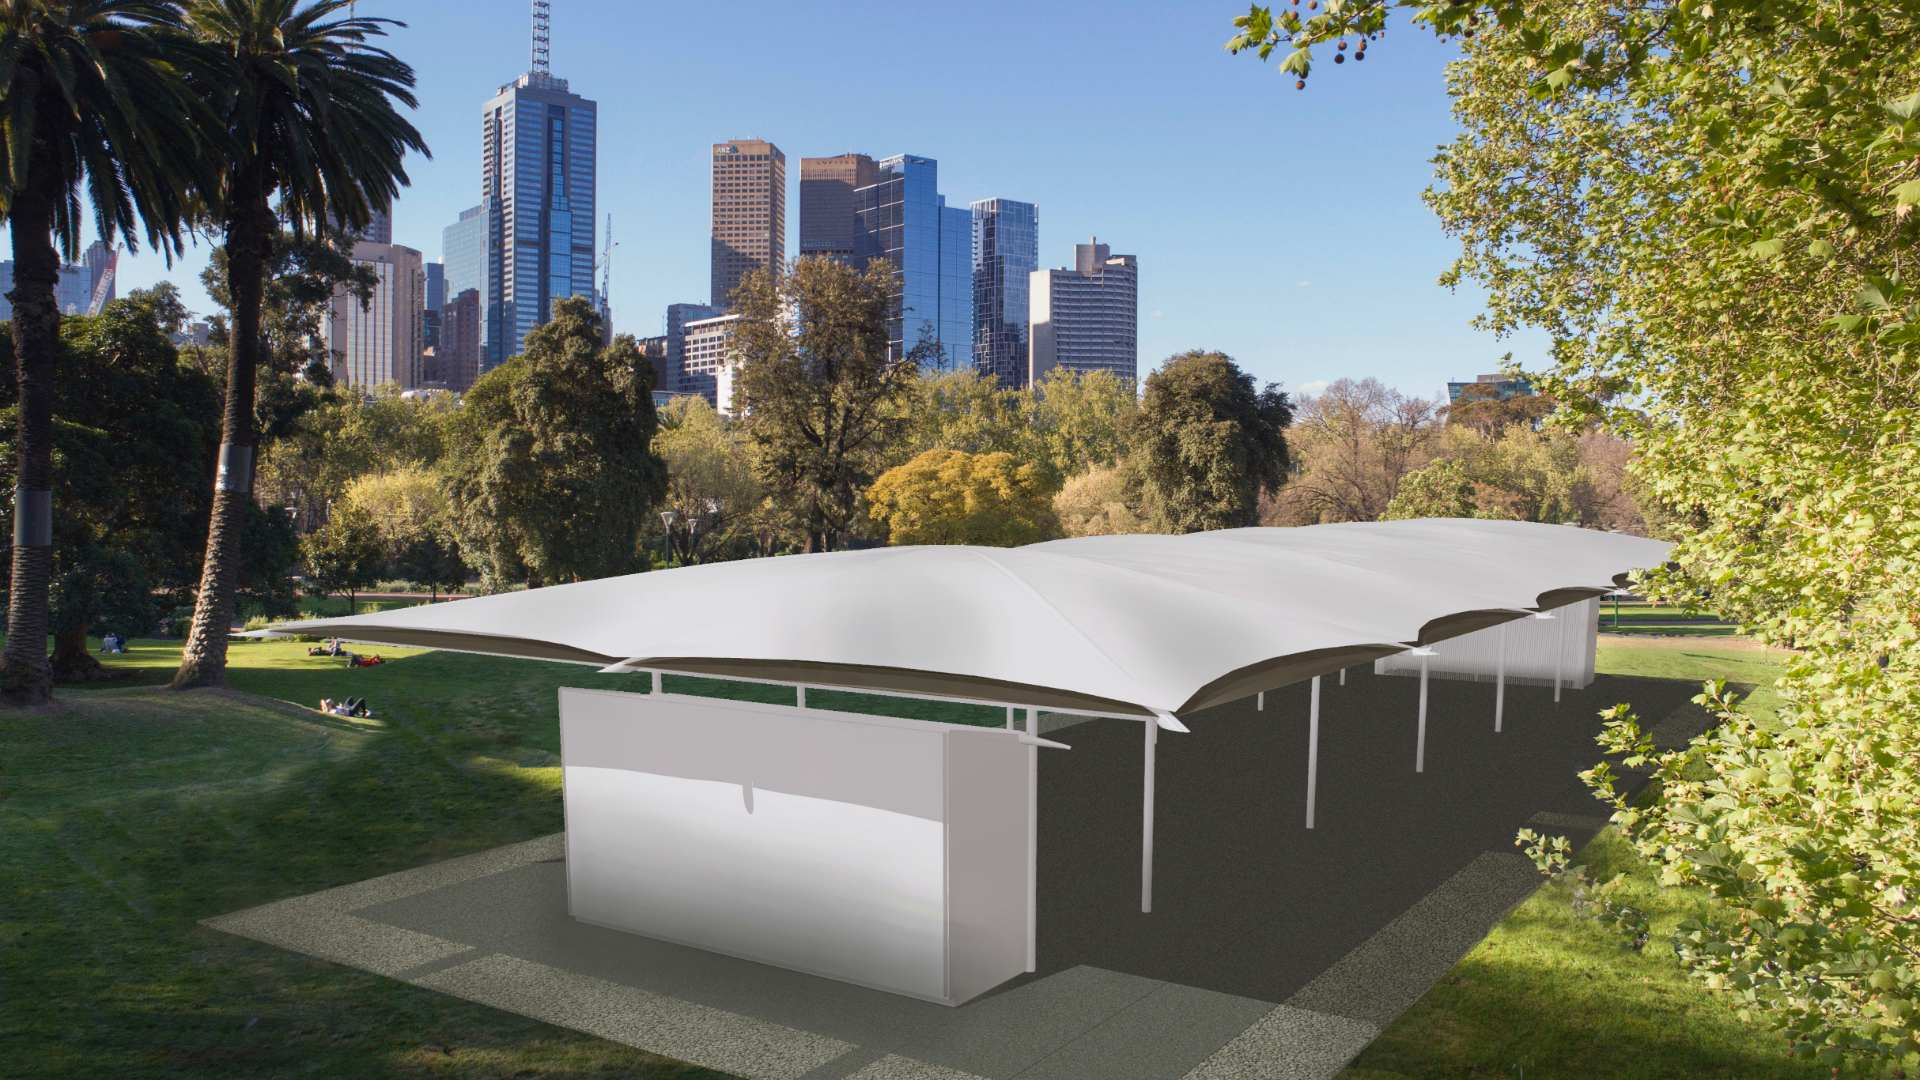 The Minimalist Design for Melbourne's 2019 MPavilion Has Just Been Unveiled